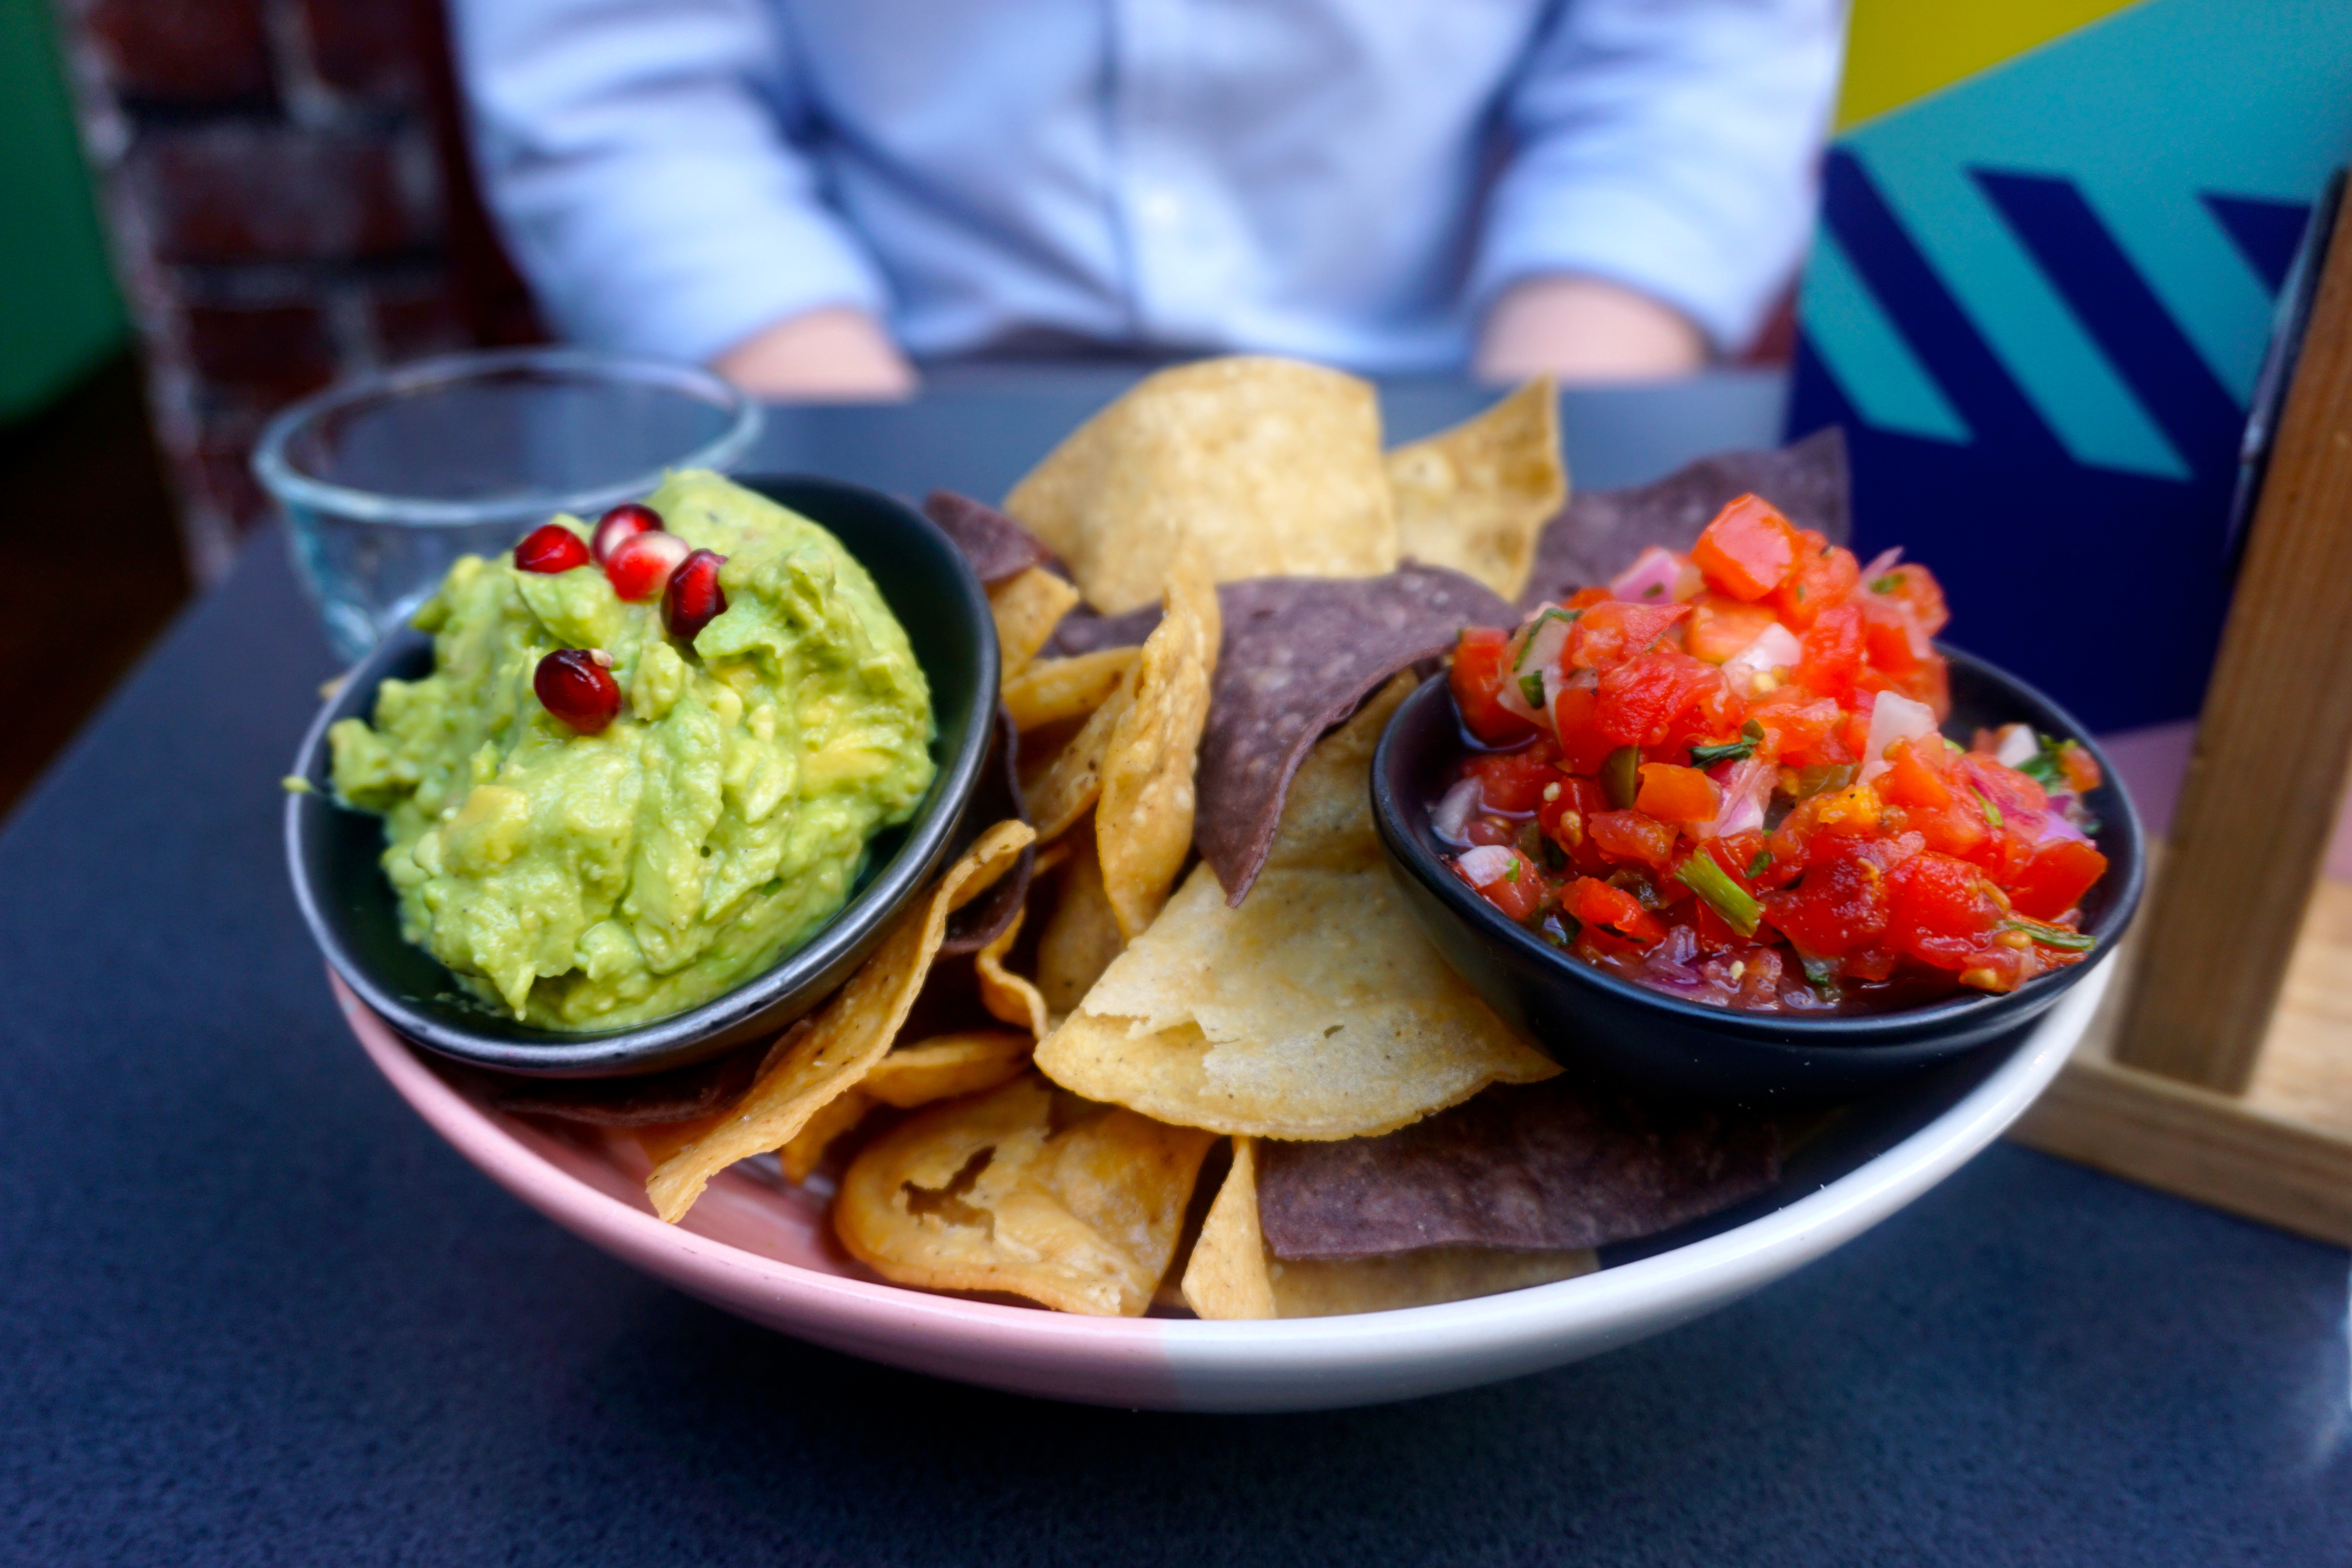 Fonda Mexican (Melbourne Food Review) - Adventure Lies in Front